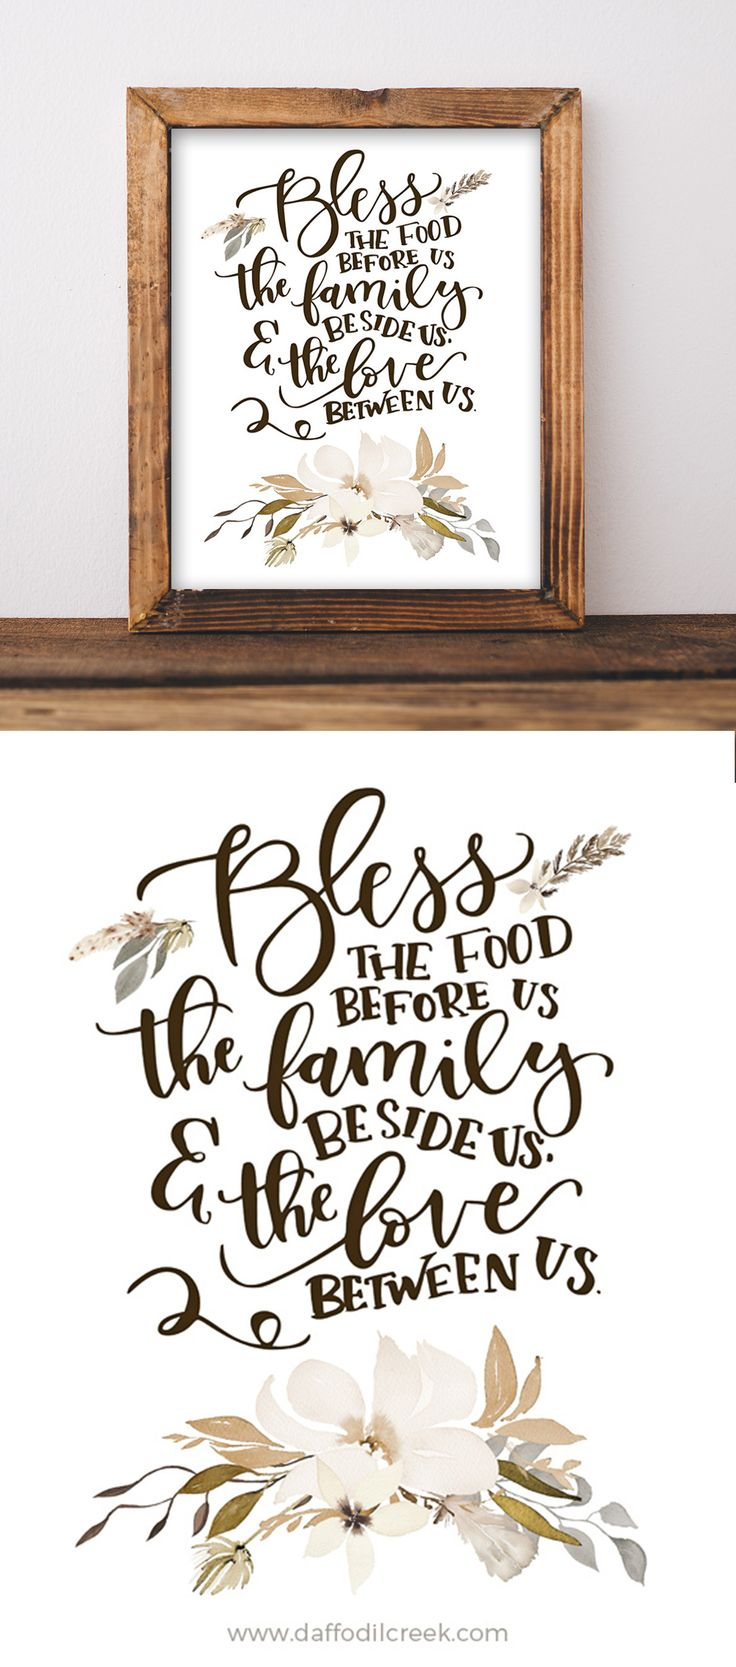 Cute mealtime blessing for your kitchen or dining room walls!